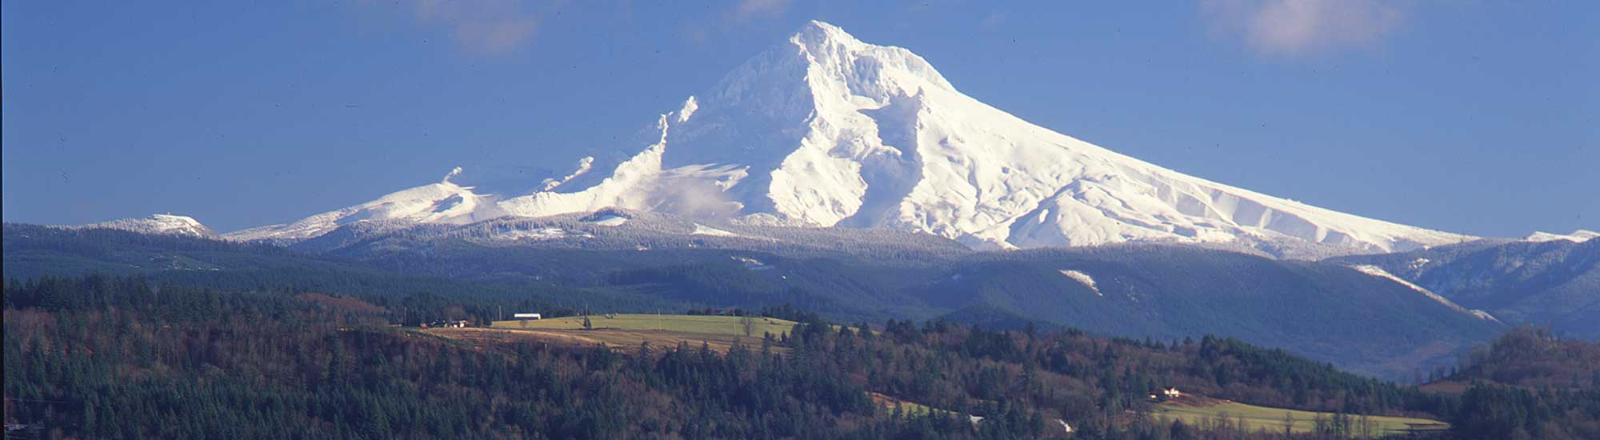 View from Jonsrud Viewpoint in Sandy of farmlands and forest with snow covered Mt. Hood filling the blue skyline.